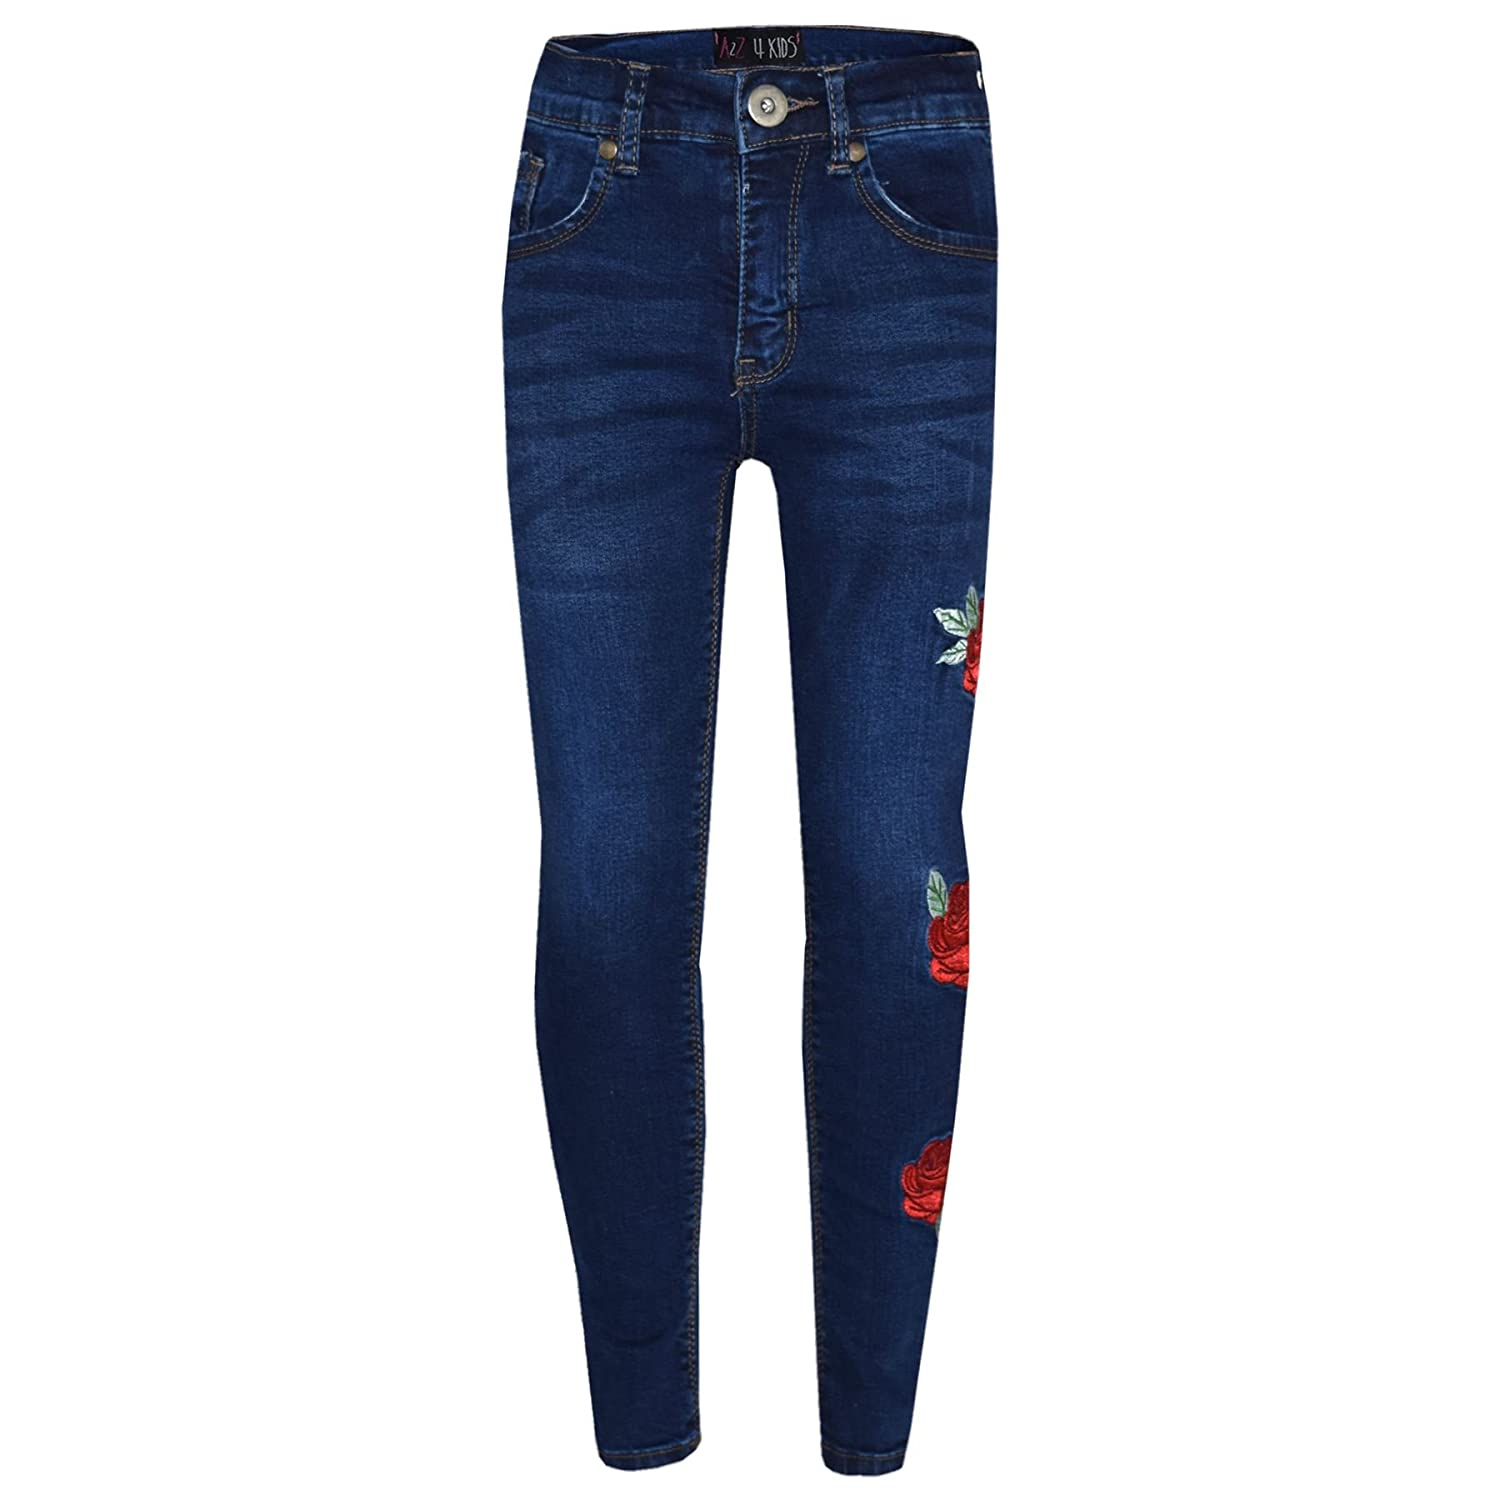 A2Z 4 Kids® Girls Stretchy Jeans Kids Ripped Denim Pants Fashion Trousers Jeggings Age 5 6 7 8 9 10 11 12 13 Years